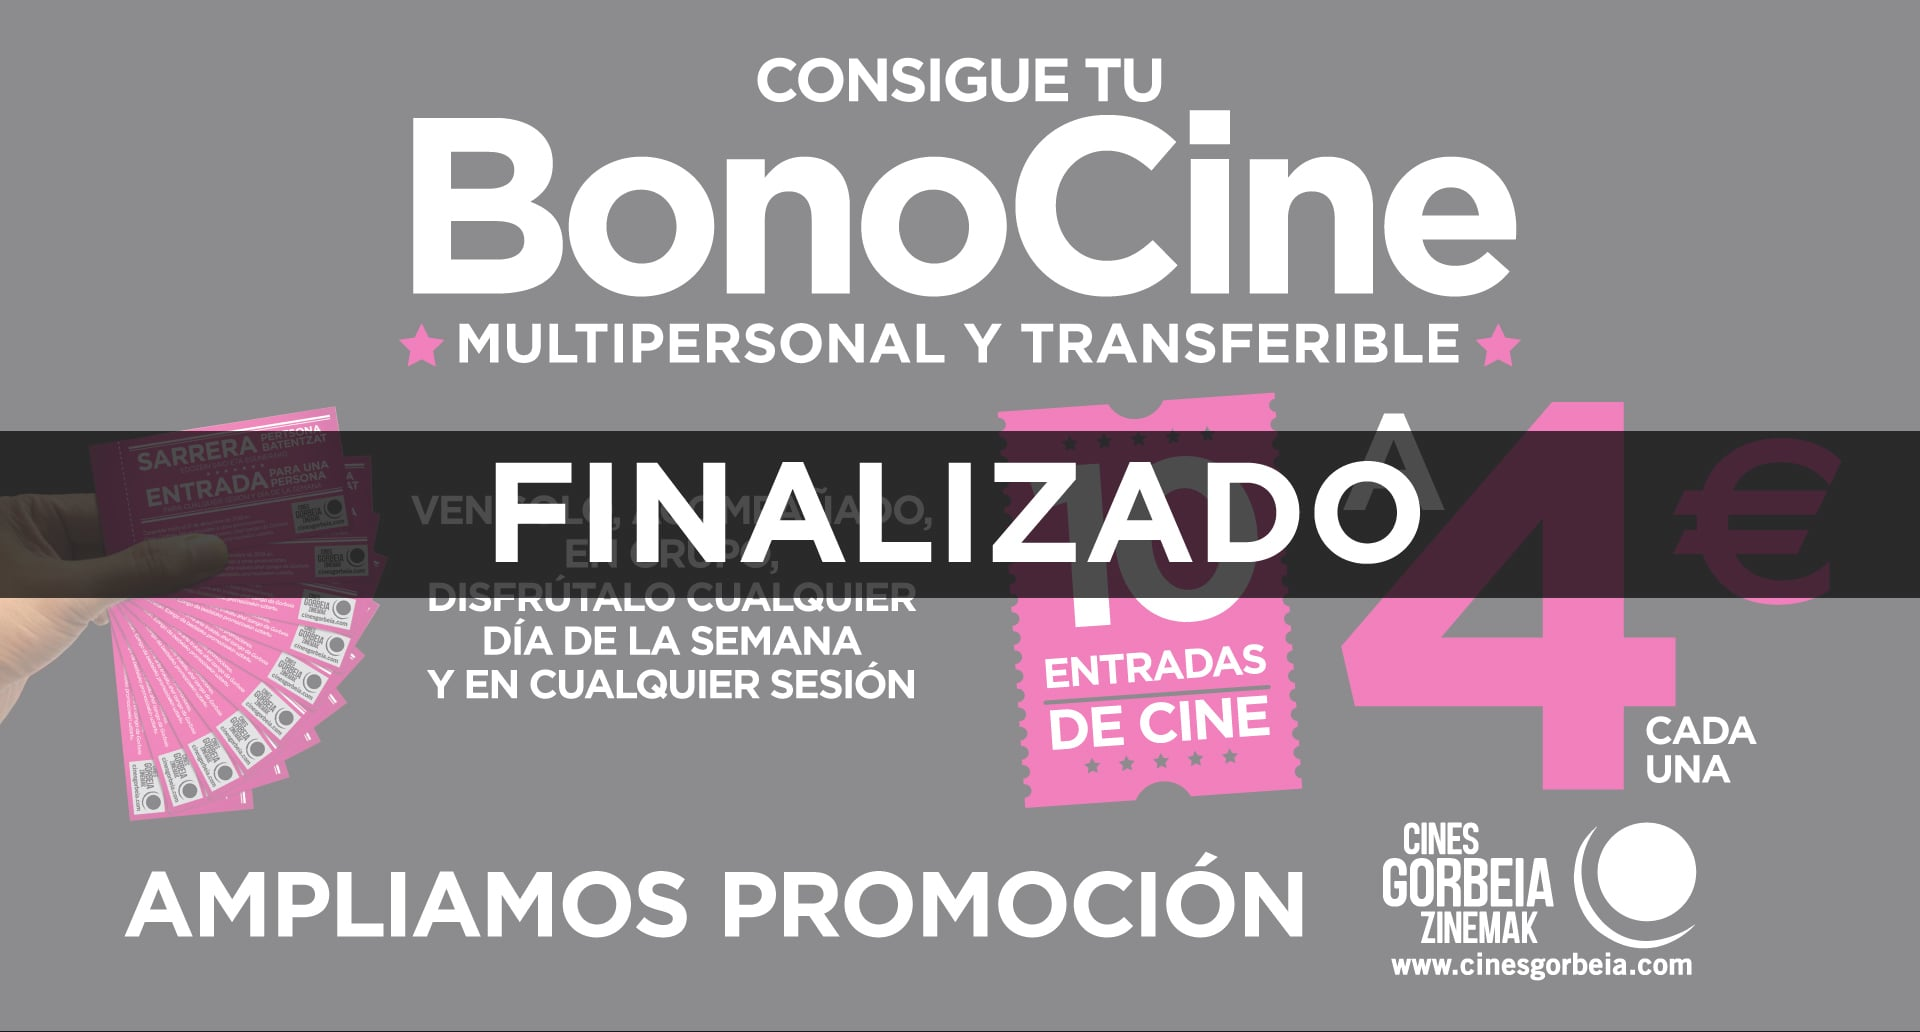 Consigue tu BonoCine multipersonal y transferible